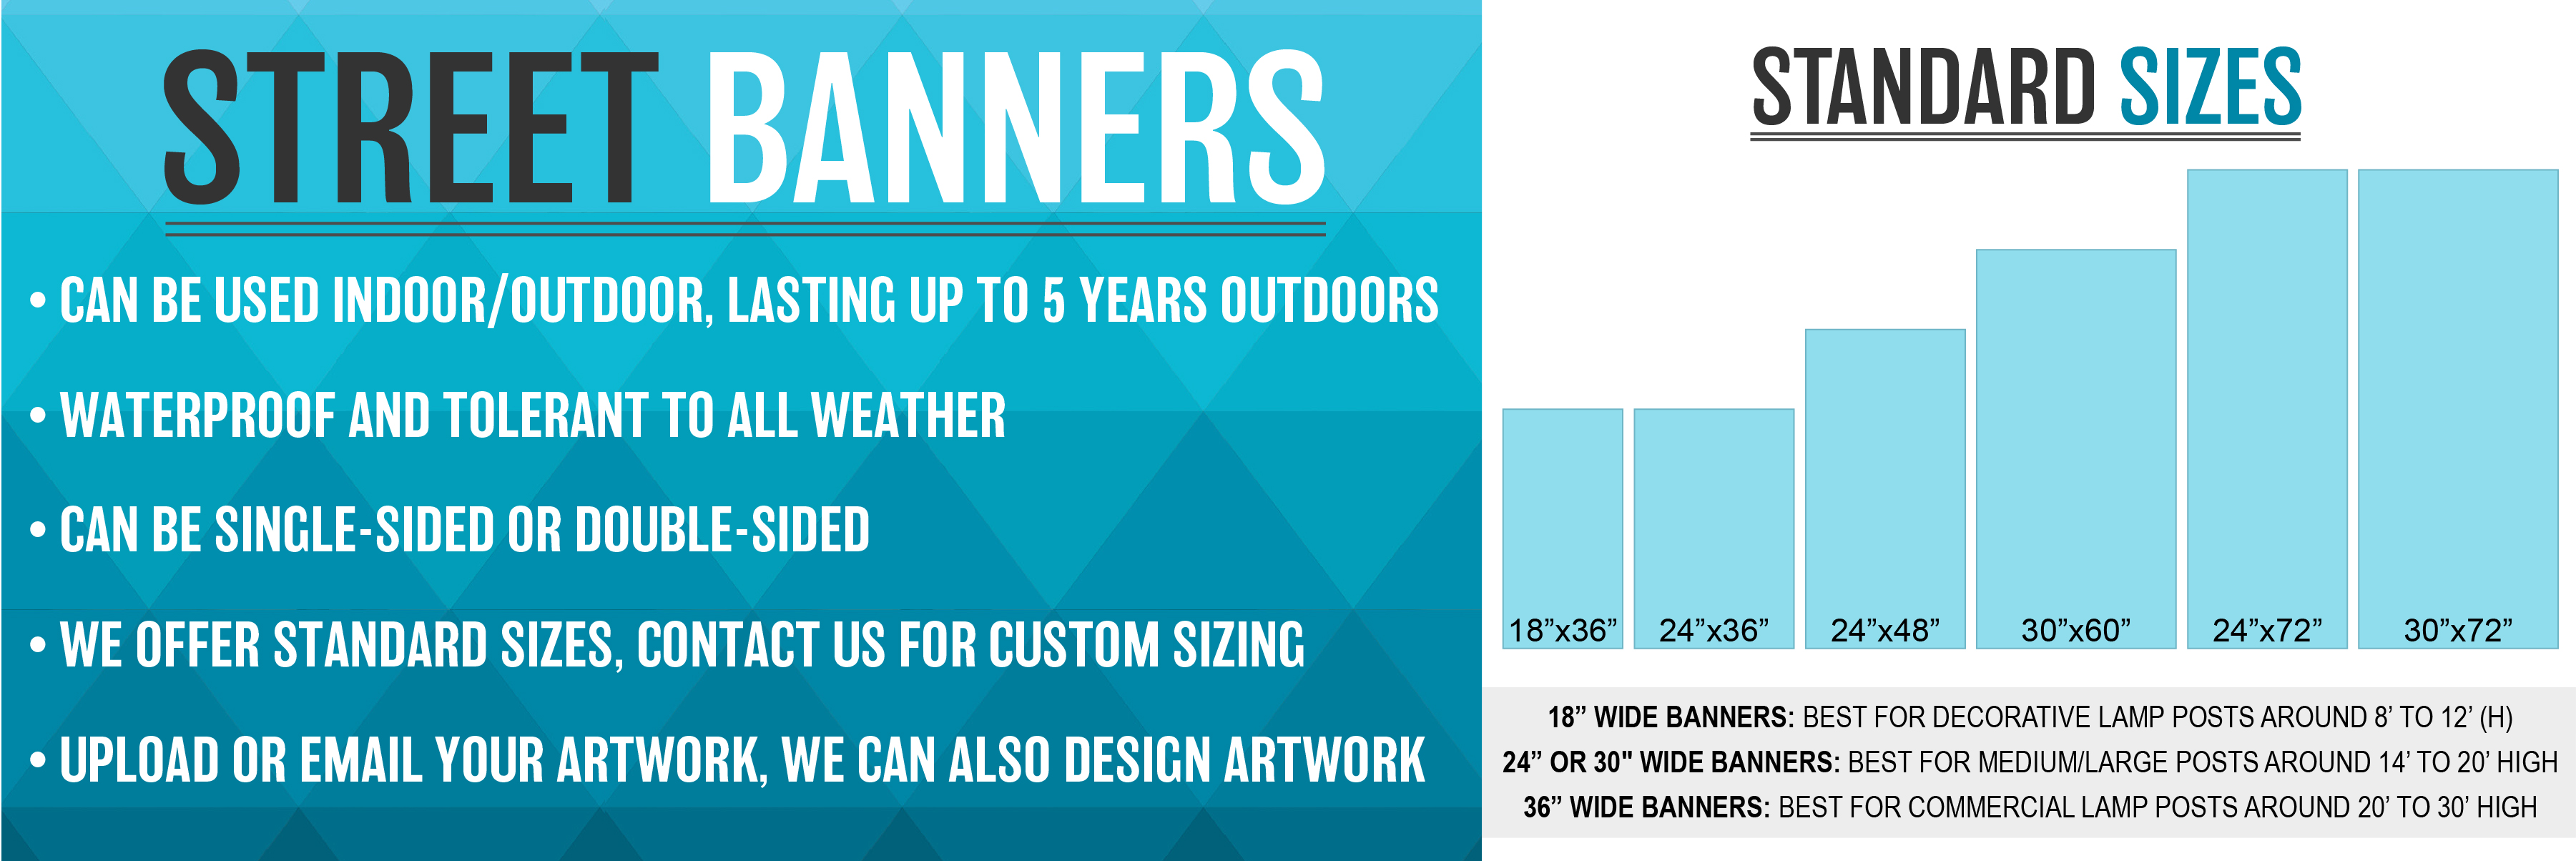 Standard street banner sizes including custom sizes.